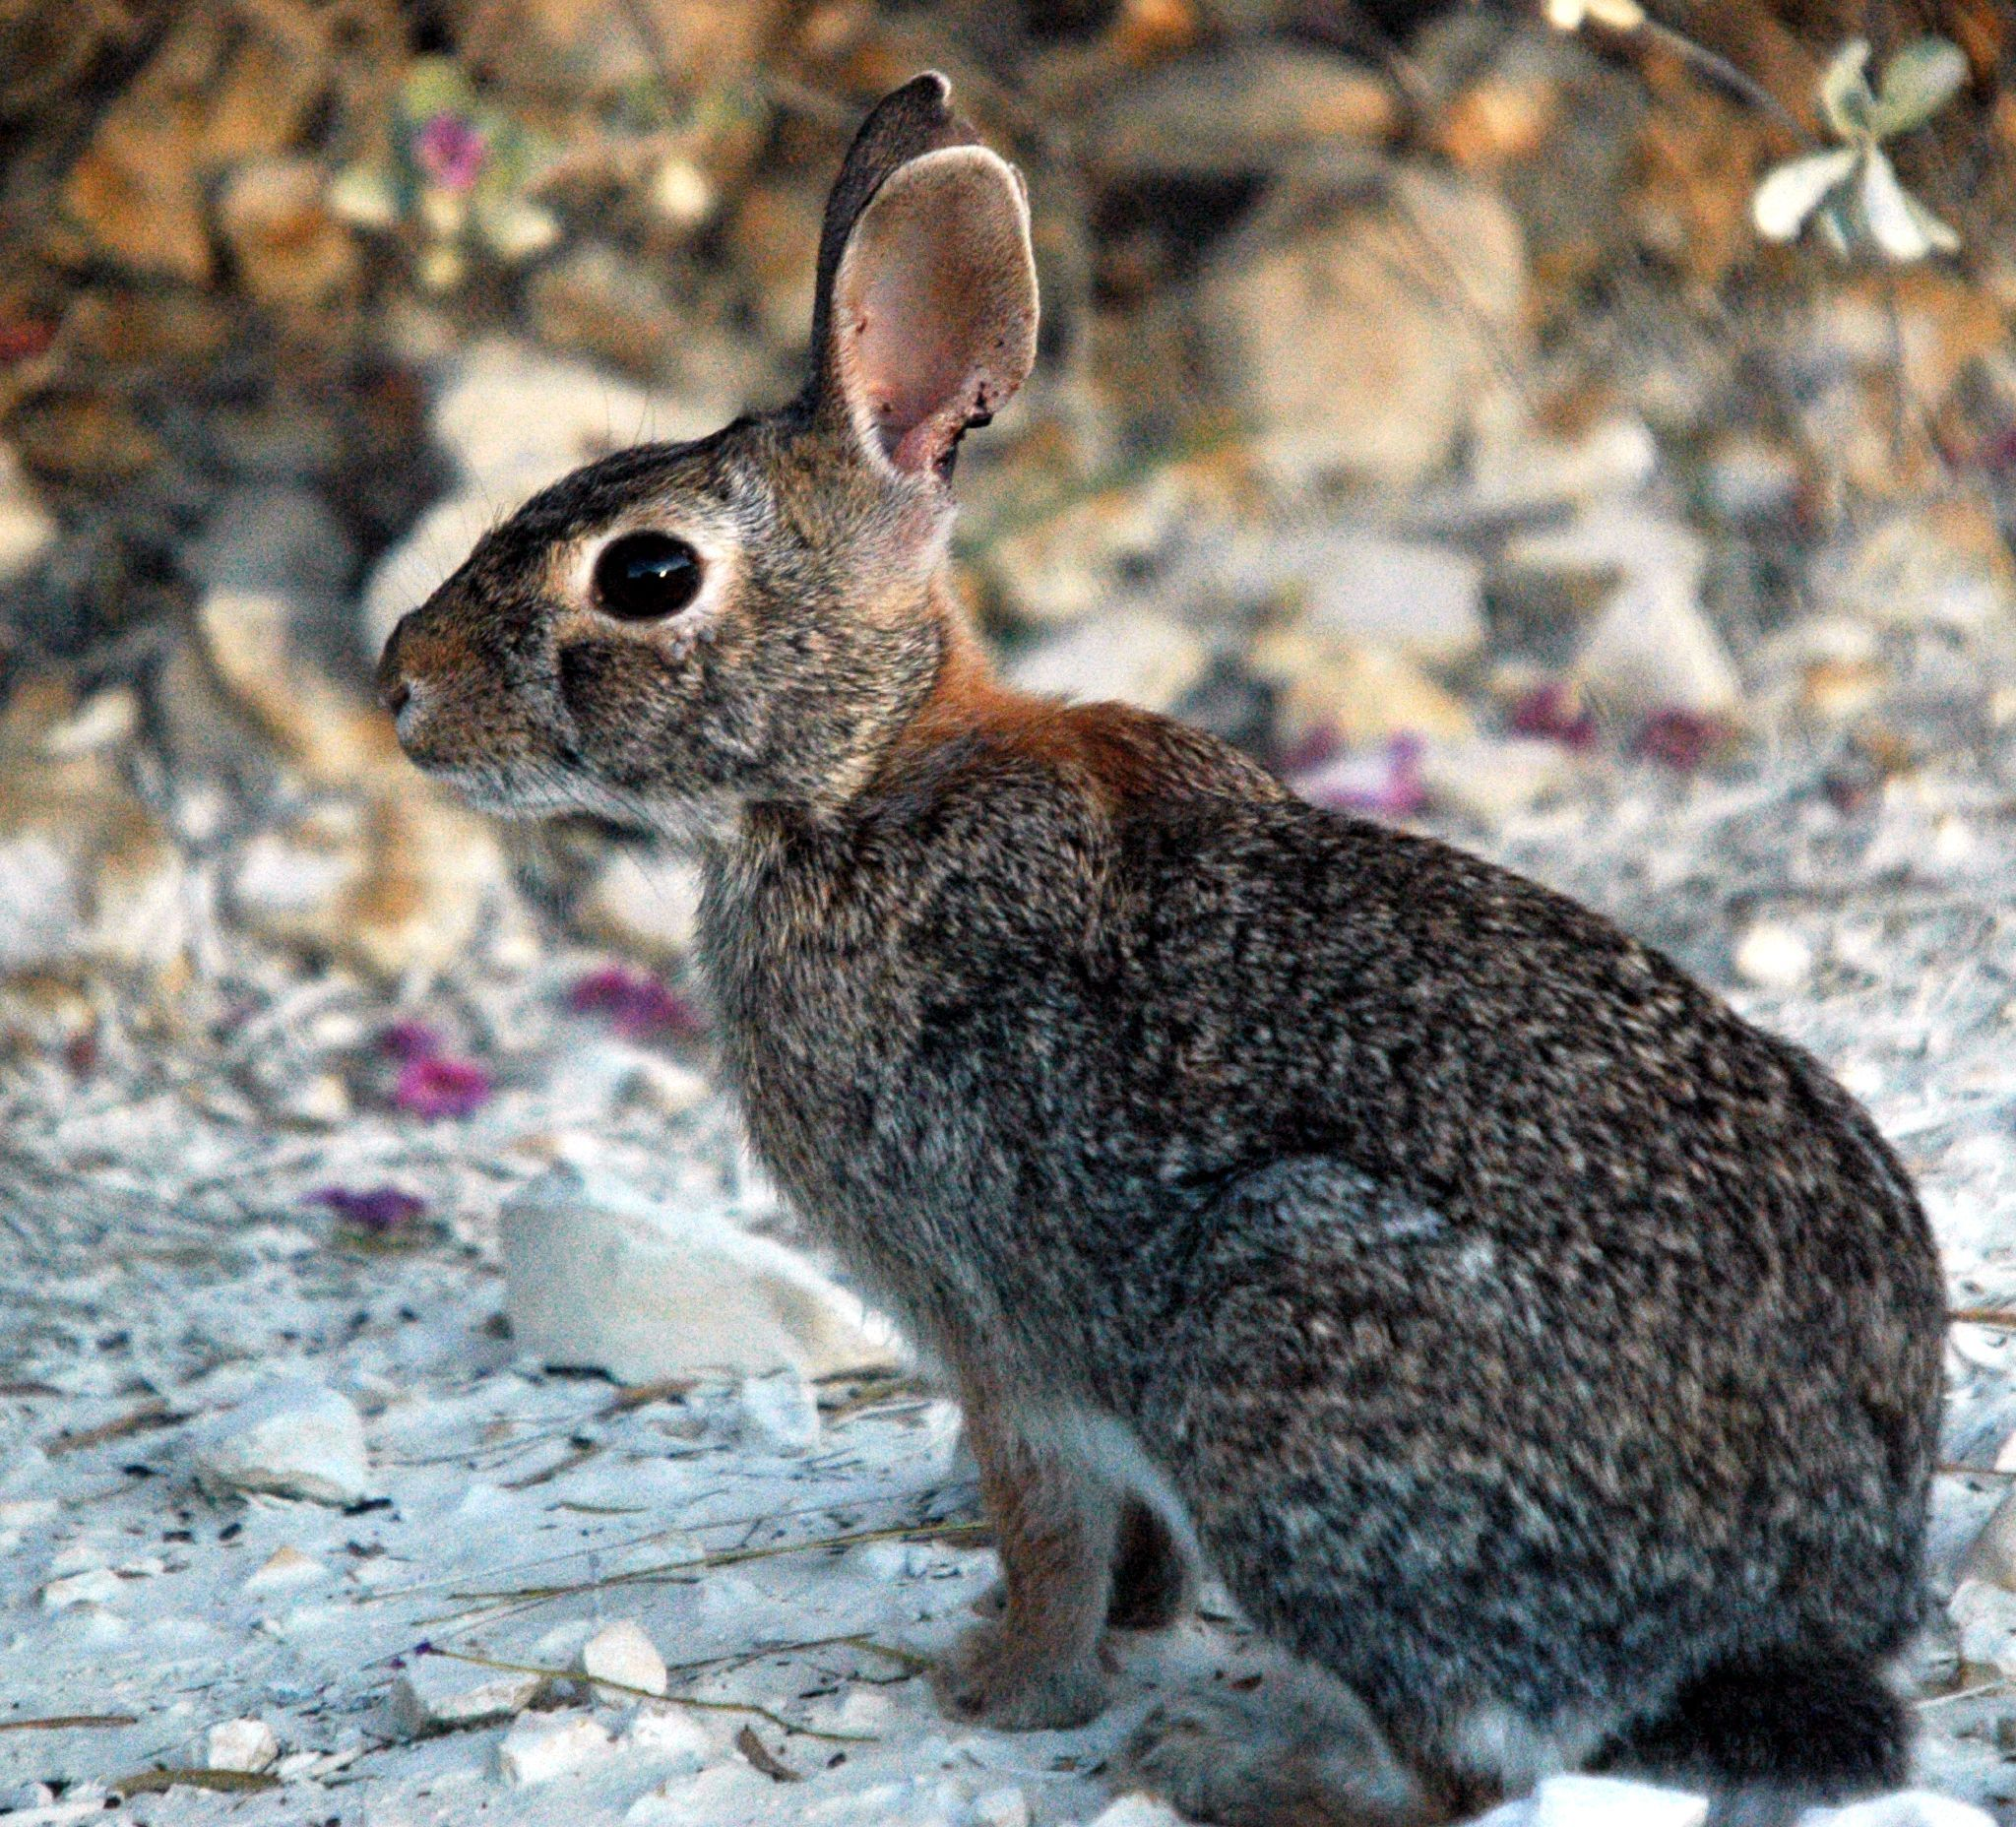 Cottontail rabbits also have stocky, compact bodies with short front ...